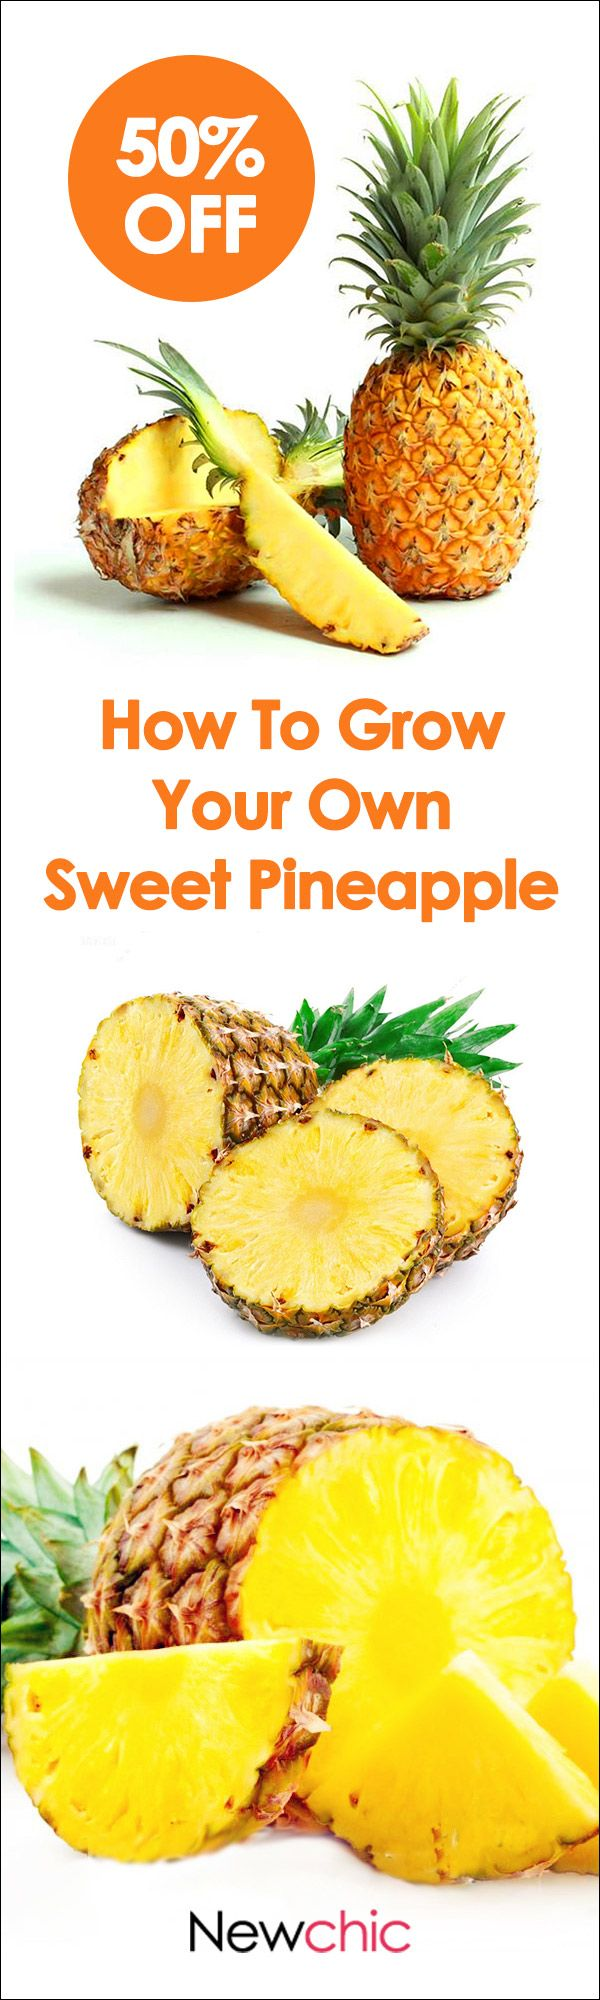 What to grow in your garden? -- Egrow 100PCS Sweet Pineapple Seeds Home Garden Potted Delicious Edible Fruit Seed Bonsai Plants #newchic#garden#spring#seed#fruit#green